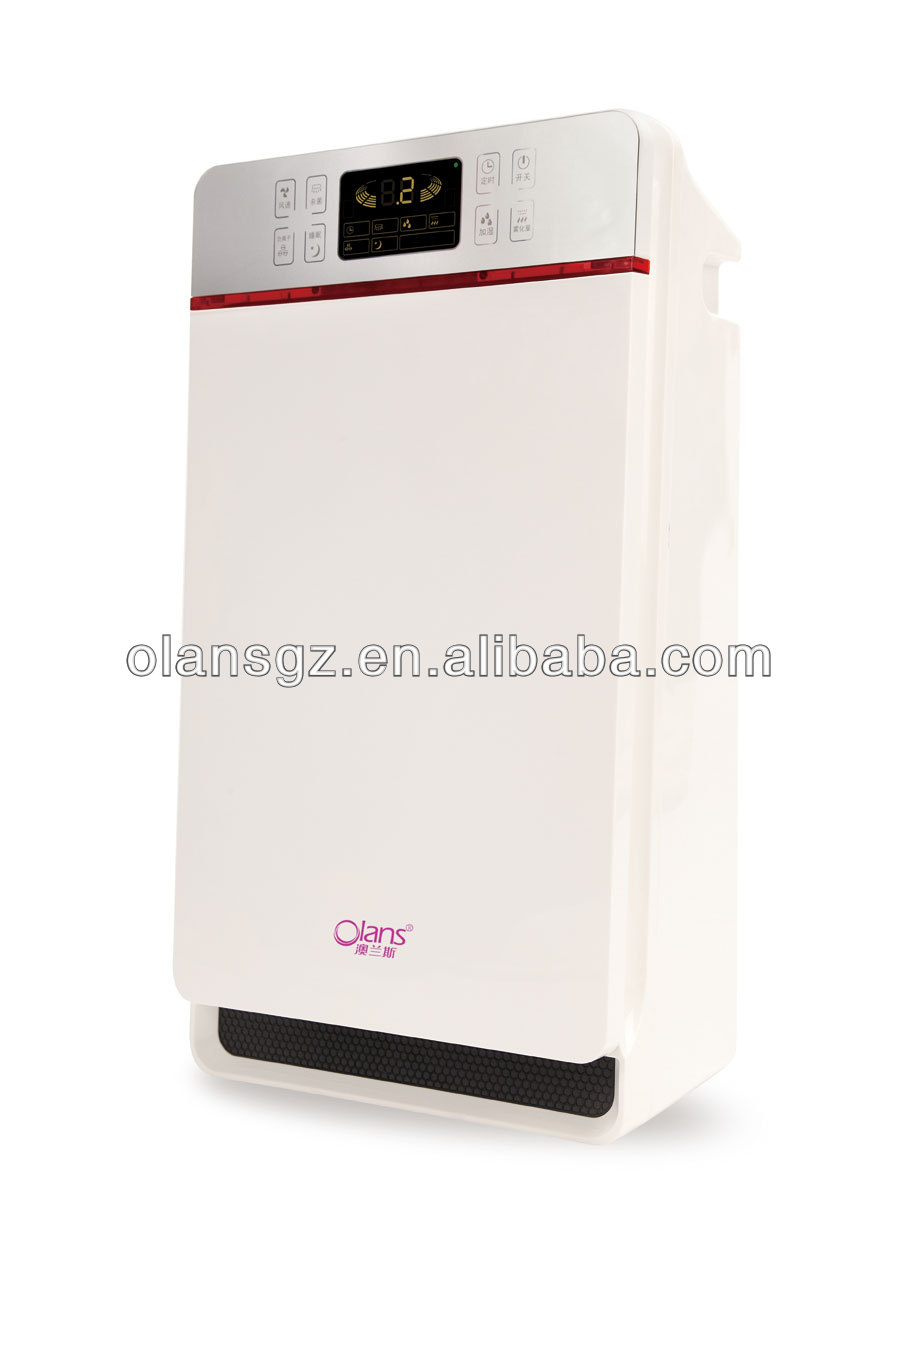 negative air purifie olans,Ultra-sonic Cleaner with LCD Display, 509W Power Consumption